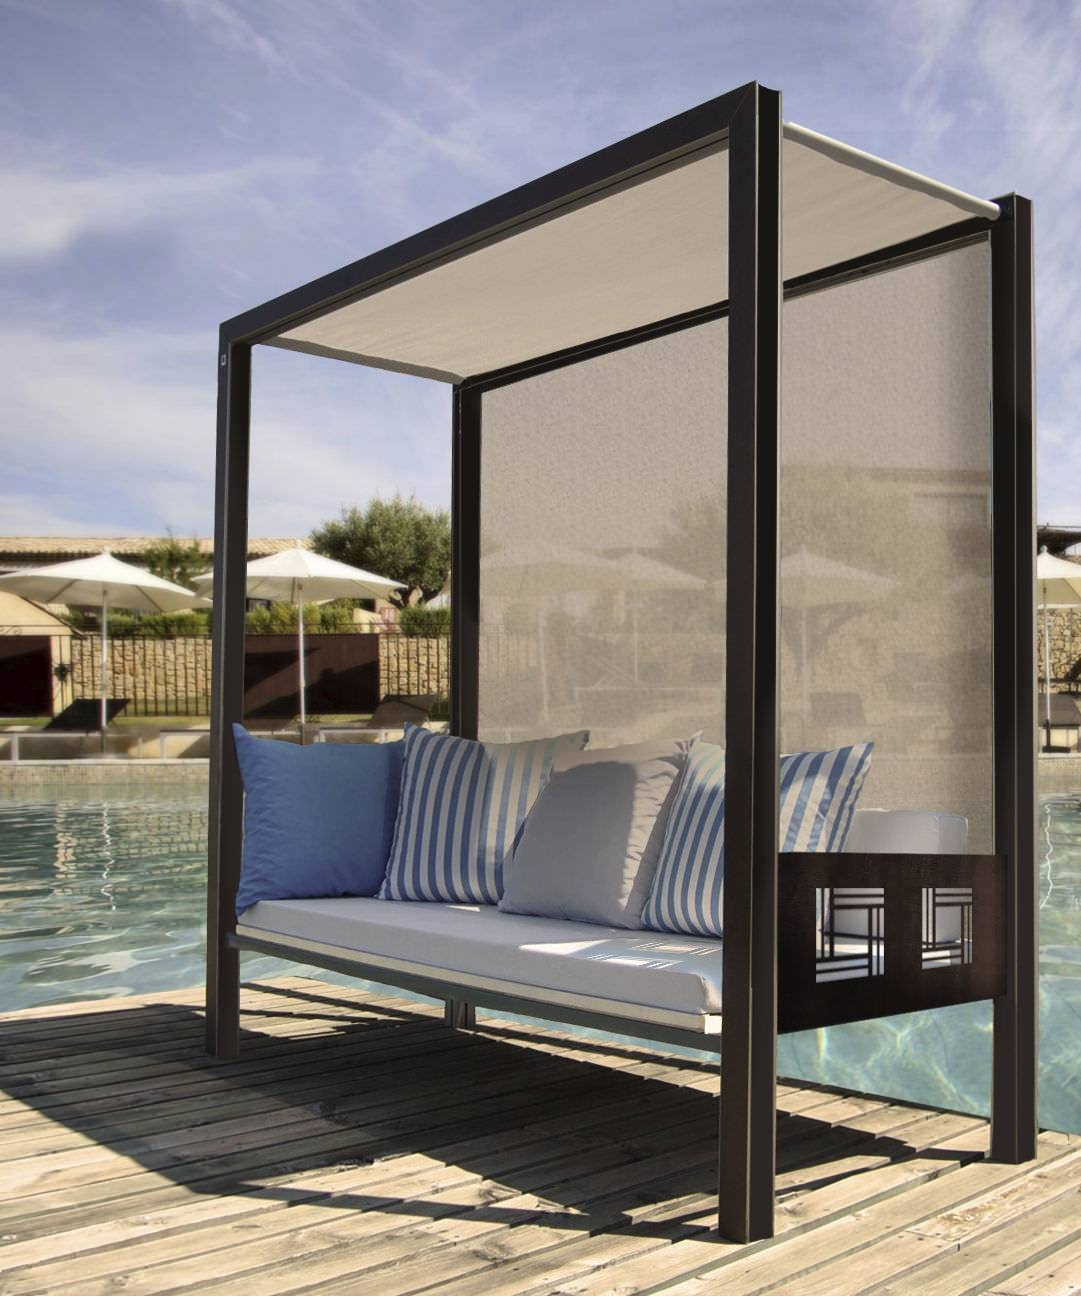 Contemporary Sofa / Garden / Metal / 3-Seater - Polymobyl Pour La inside Outdoor Sofas With Canopy (Image 8 of 30)